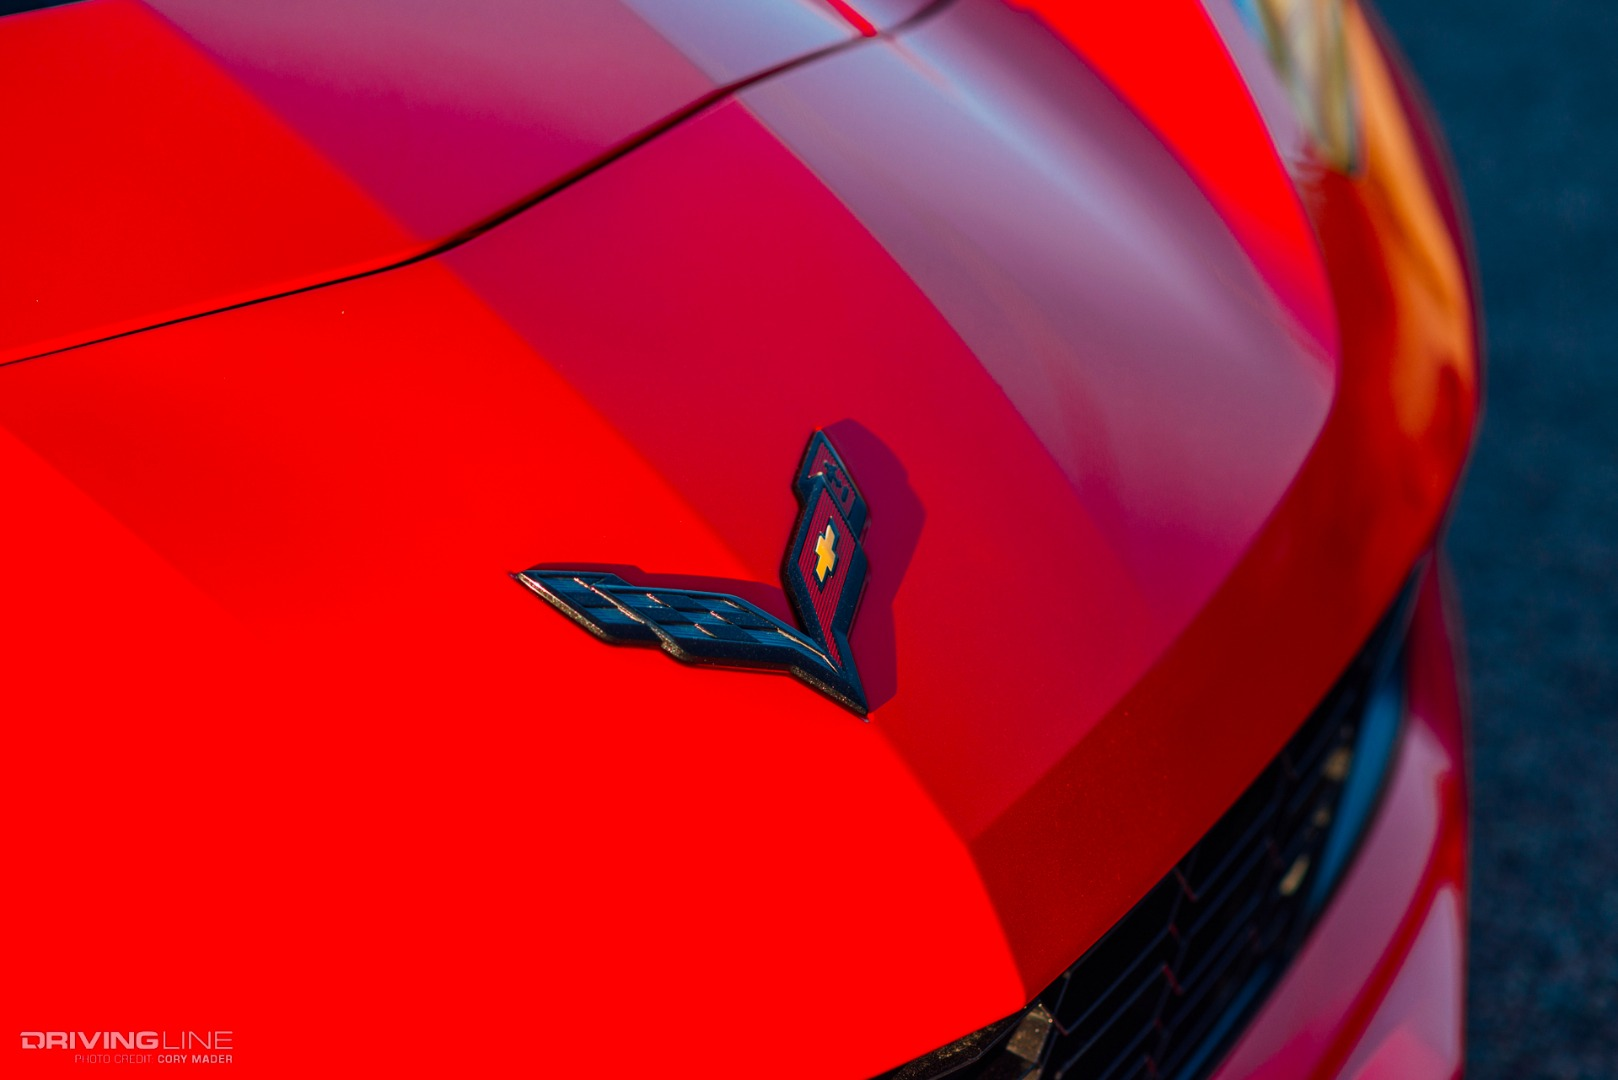 Sinister C7: Over 1,000 Horses of Daily Driven American